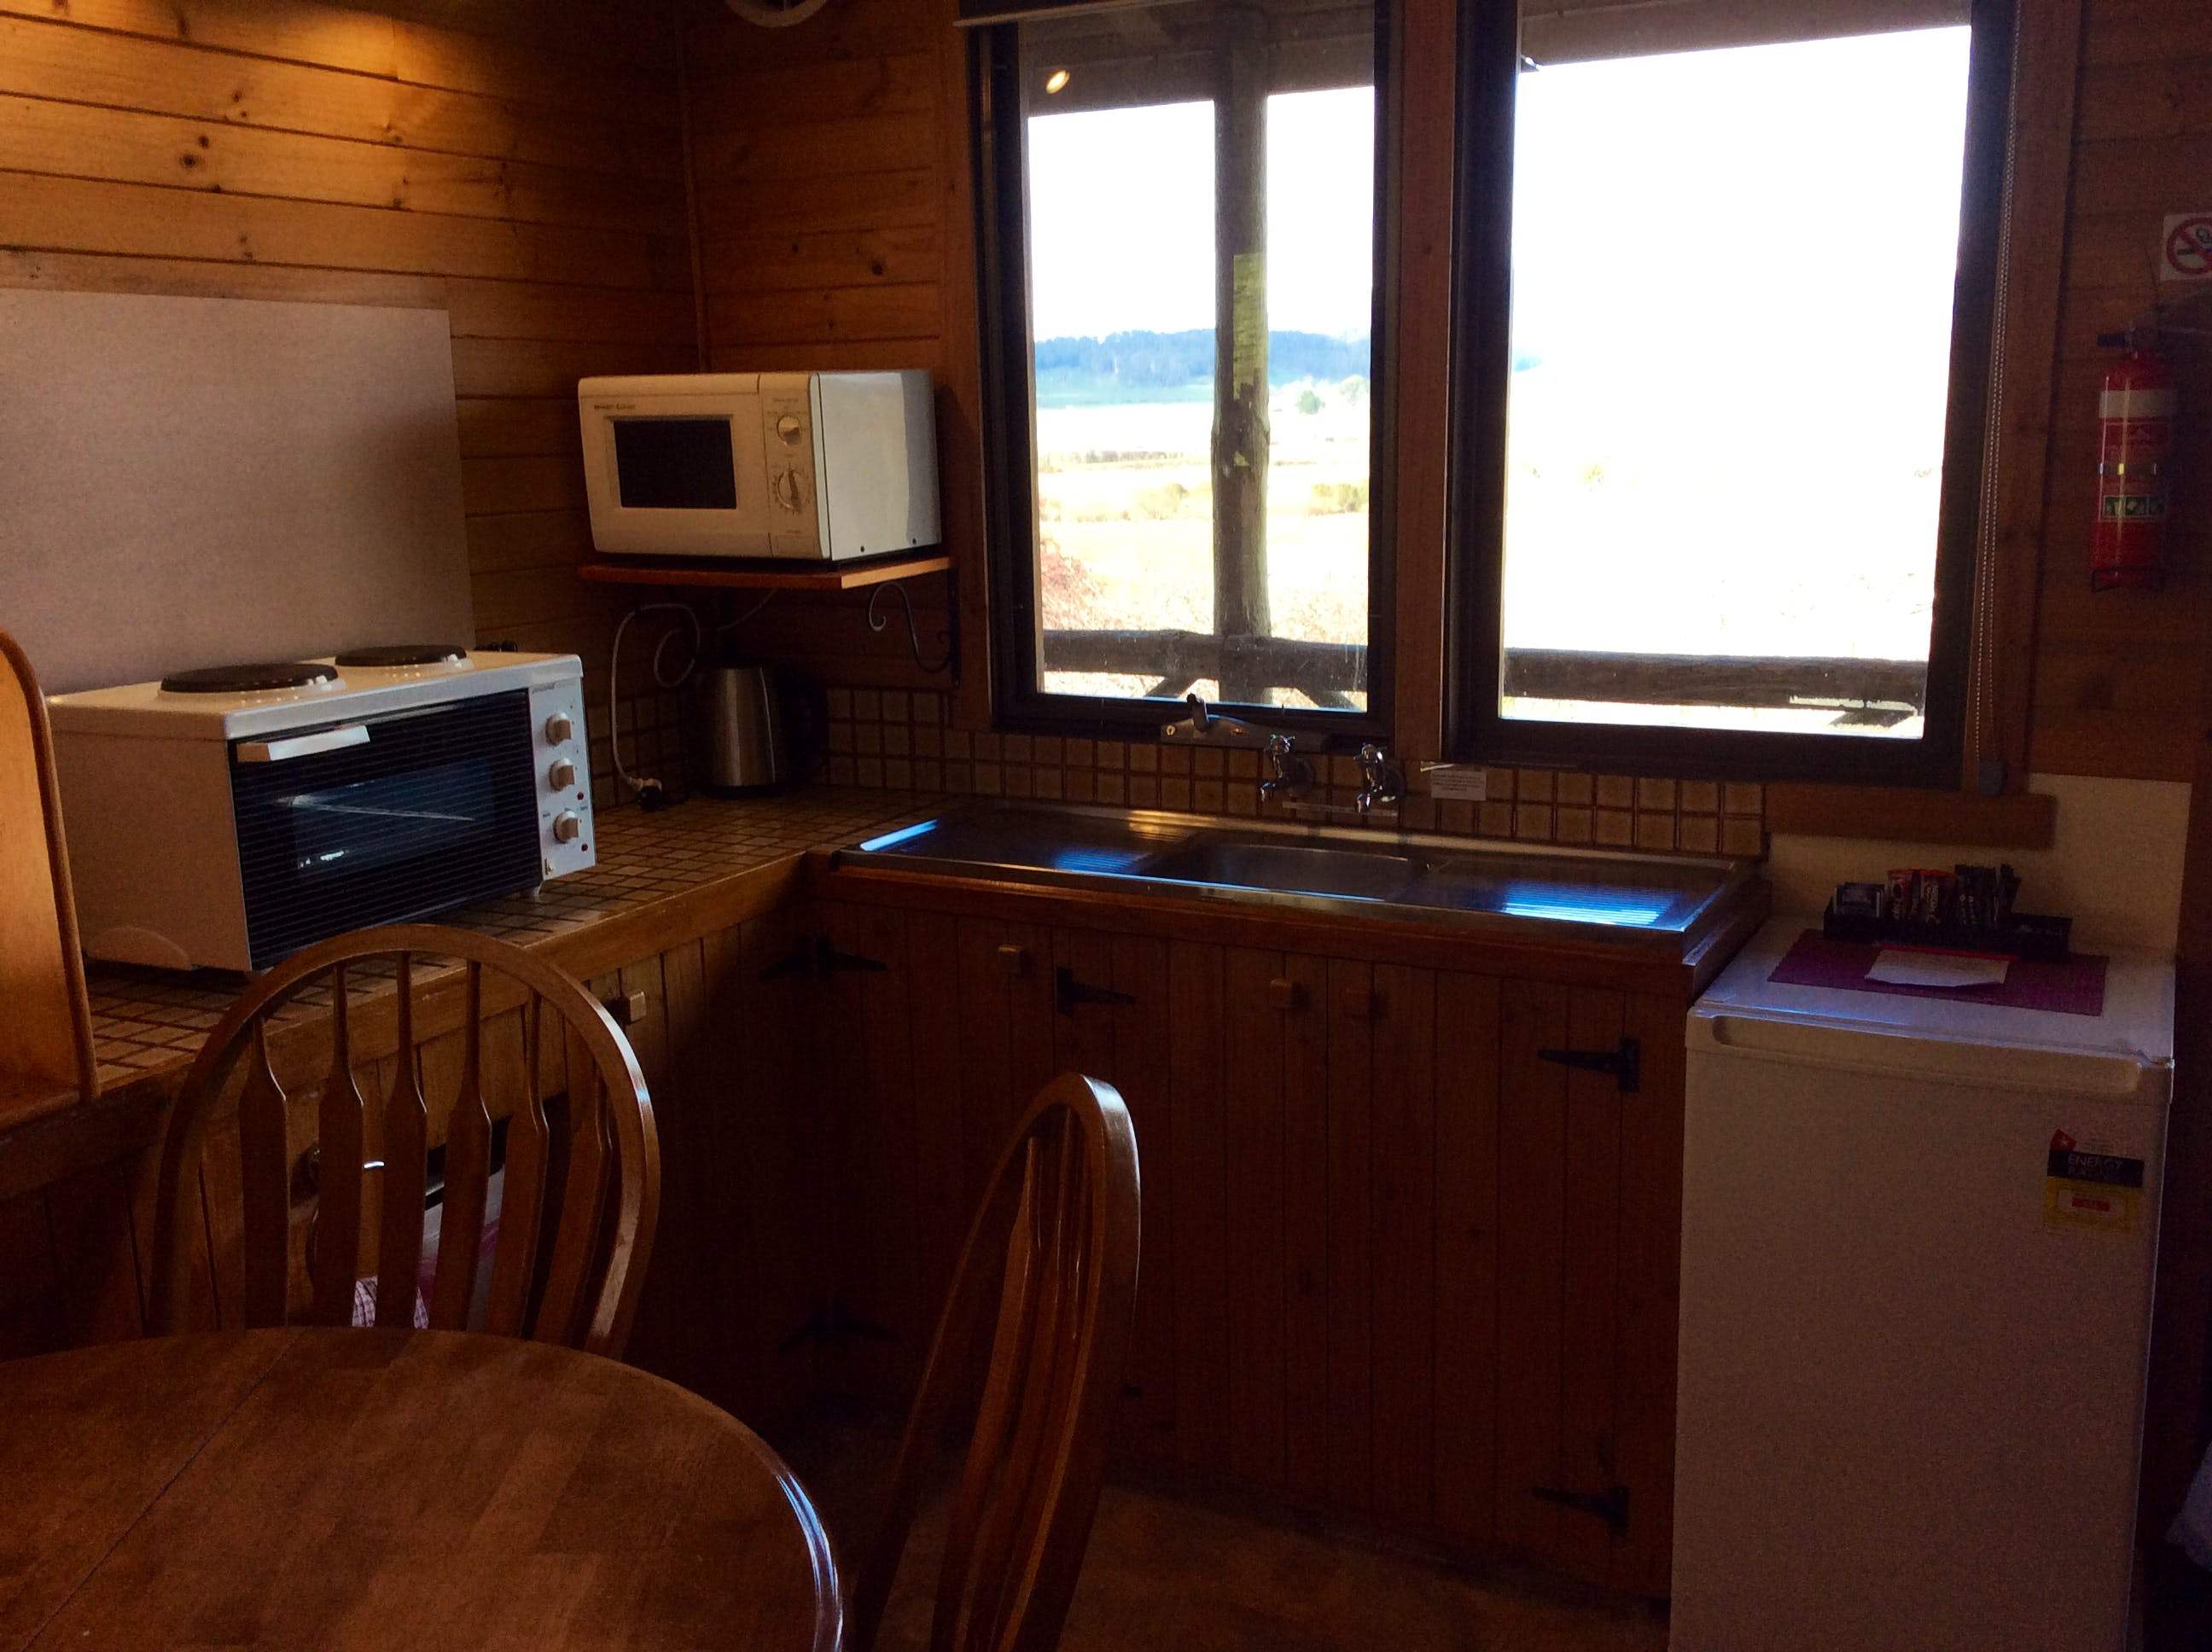 Kitchens in all cabins